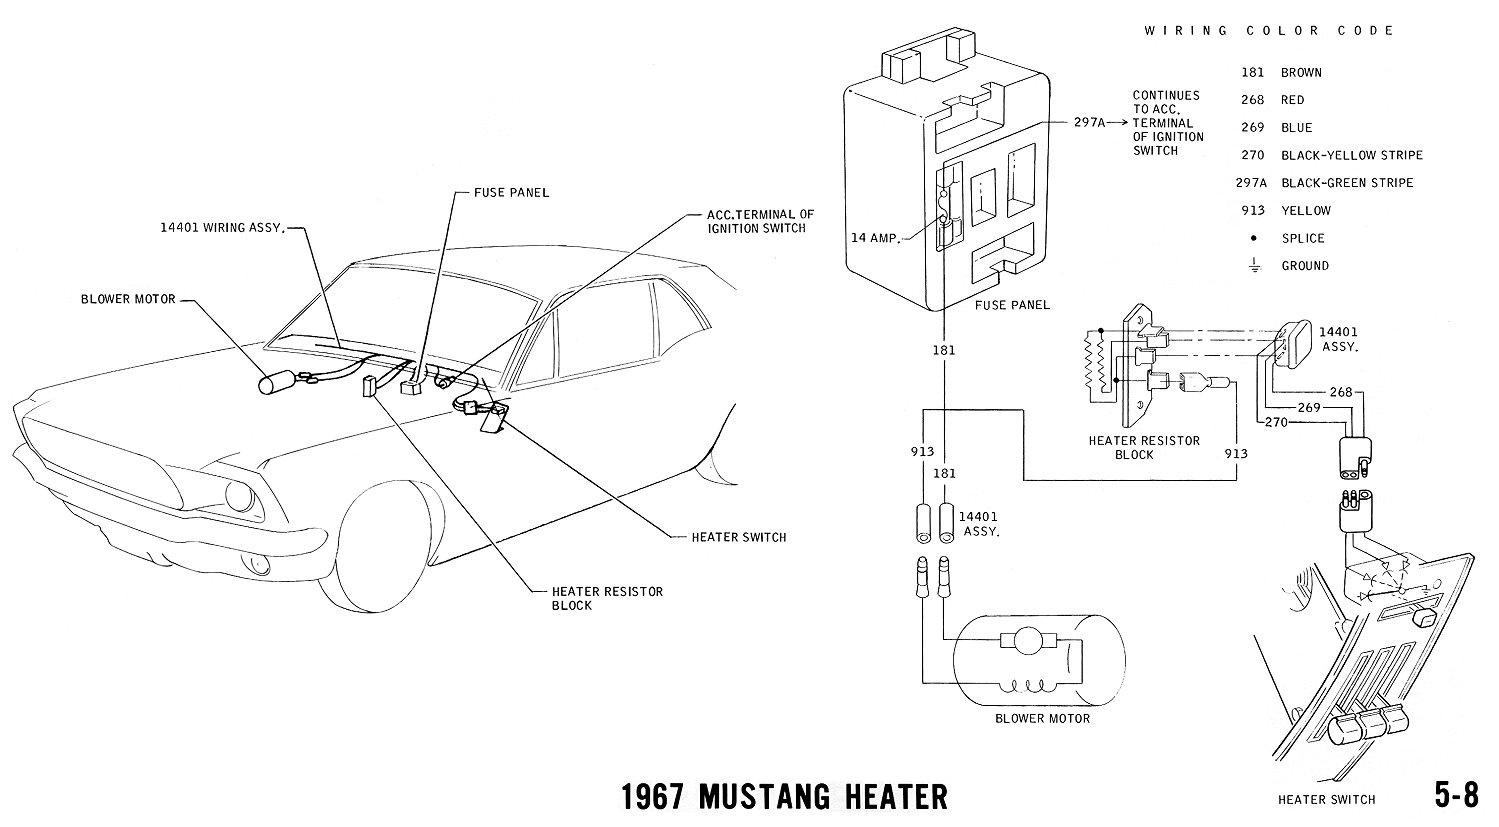 Lrmp O American Autowire Highway Wiring Buffalo Enterprises Adapter in addition Wd as well Original furthermore D Mustang Alternator Upgrade Alt Ainstalled also Breathtaking Dodge Challenger Wiring Diagram Best Of Dodge Challenger Wiring Diagram. on 1966 ford mustang alternator wiring diagram